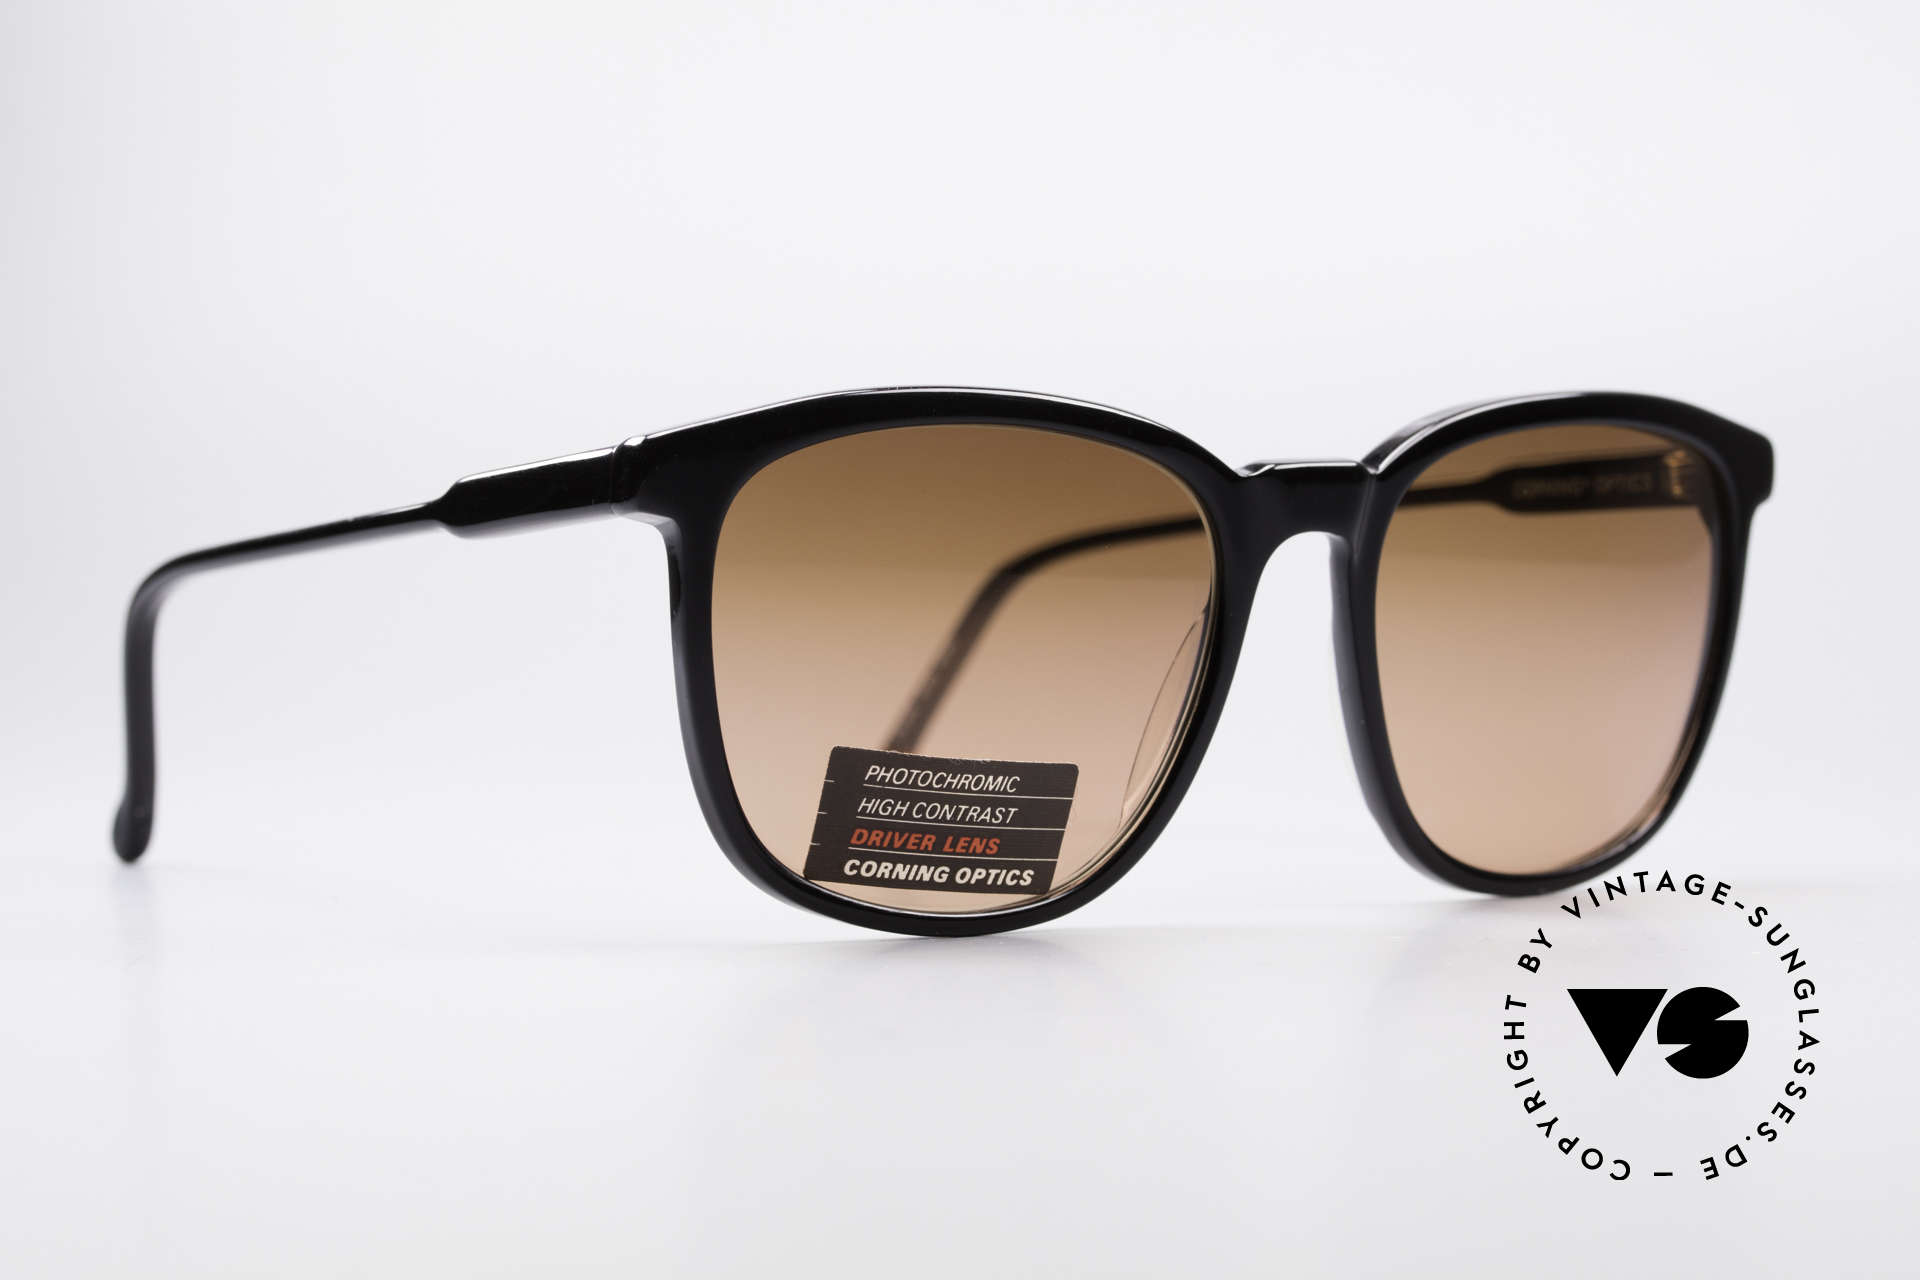 Serengeti Drivers 5343 Drivers Sunglasses, high-end contrast mineral lenses (non-reflecting coated), Made for Men and Women